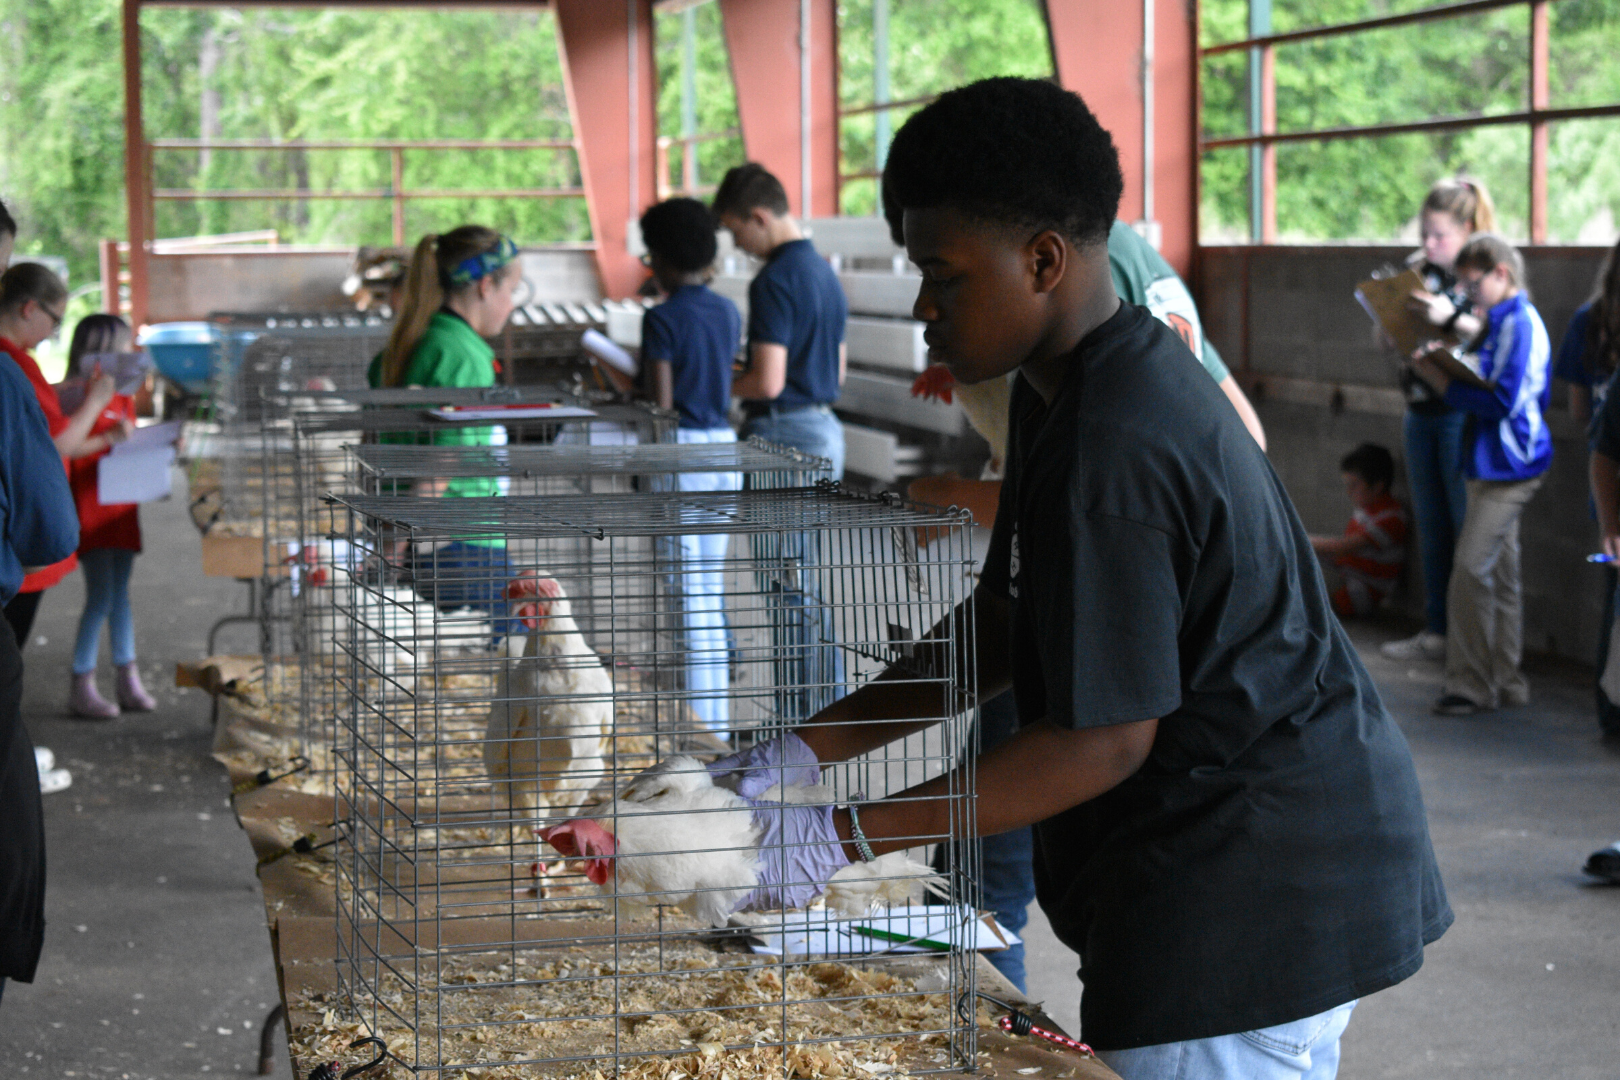 The Georgia 4-H State Poultry Judging Contest provides the opportunity for youth to learn and understand the standards used in poultry and egg production. (Photo from 2019)